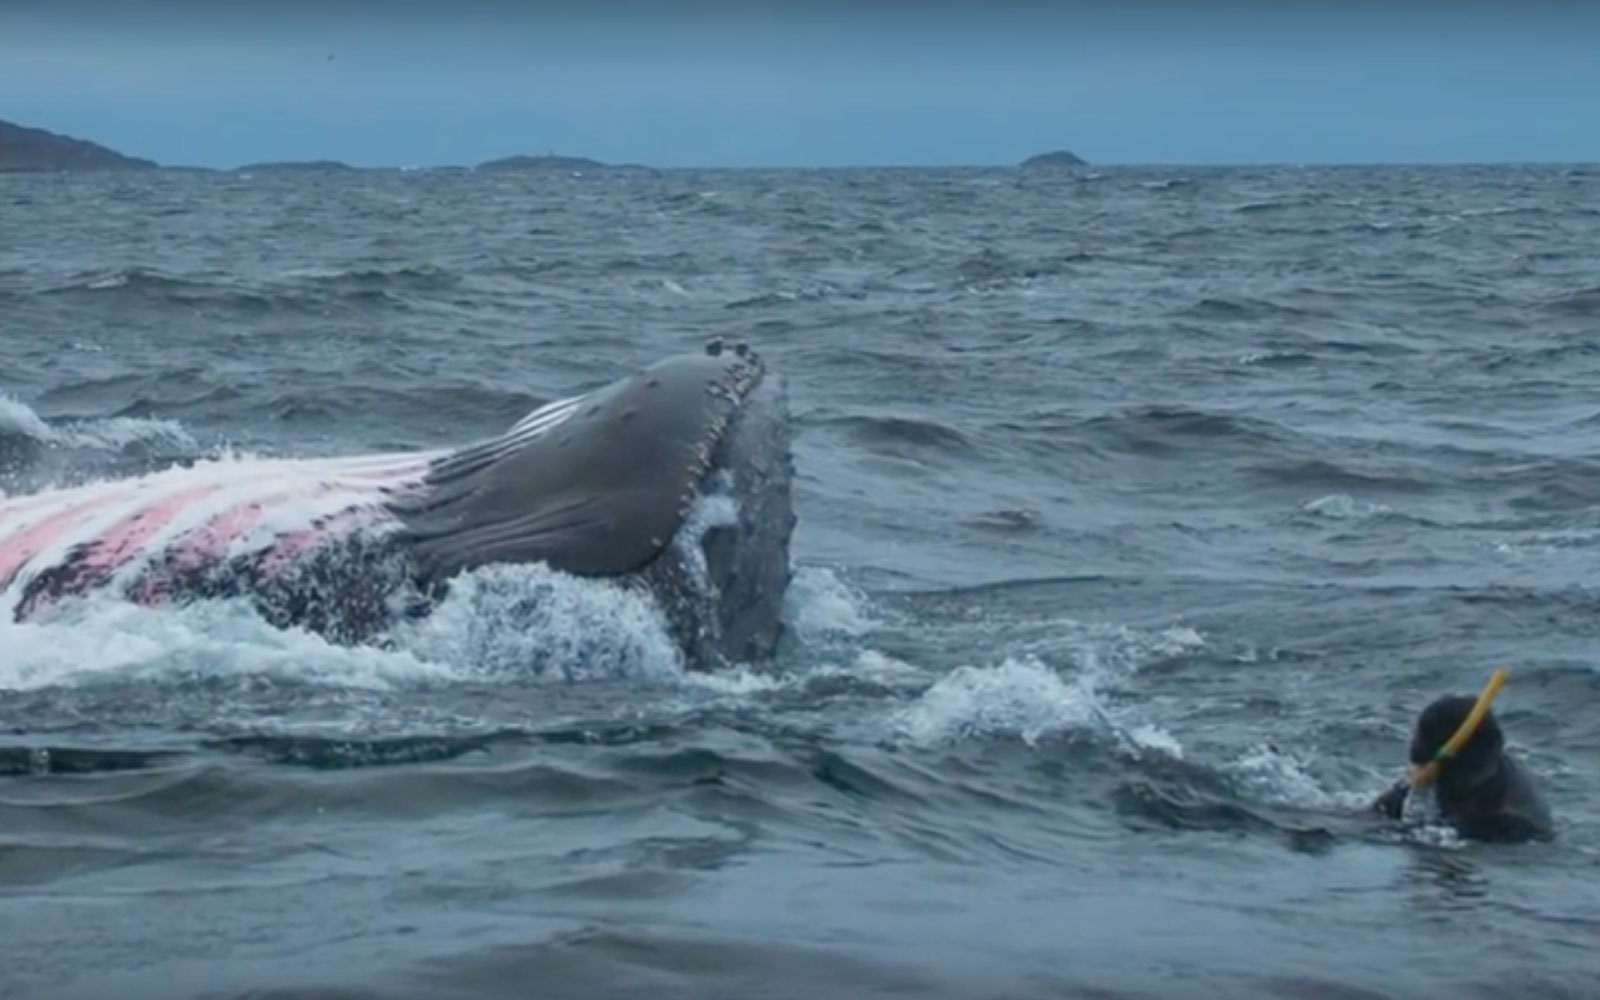 A diver came very close to a 35,000-pound humpback whale.